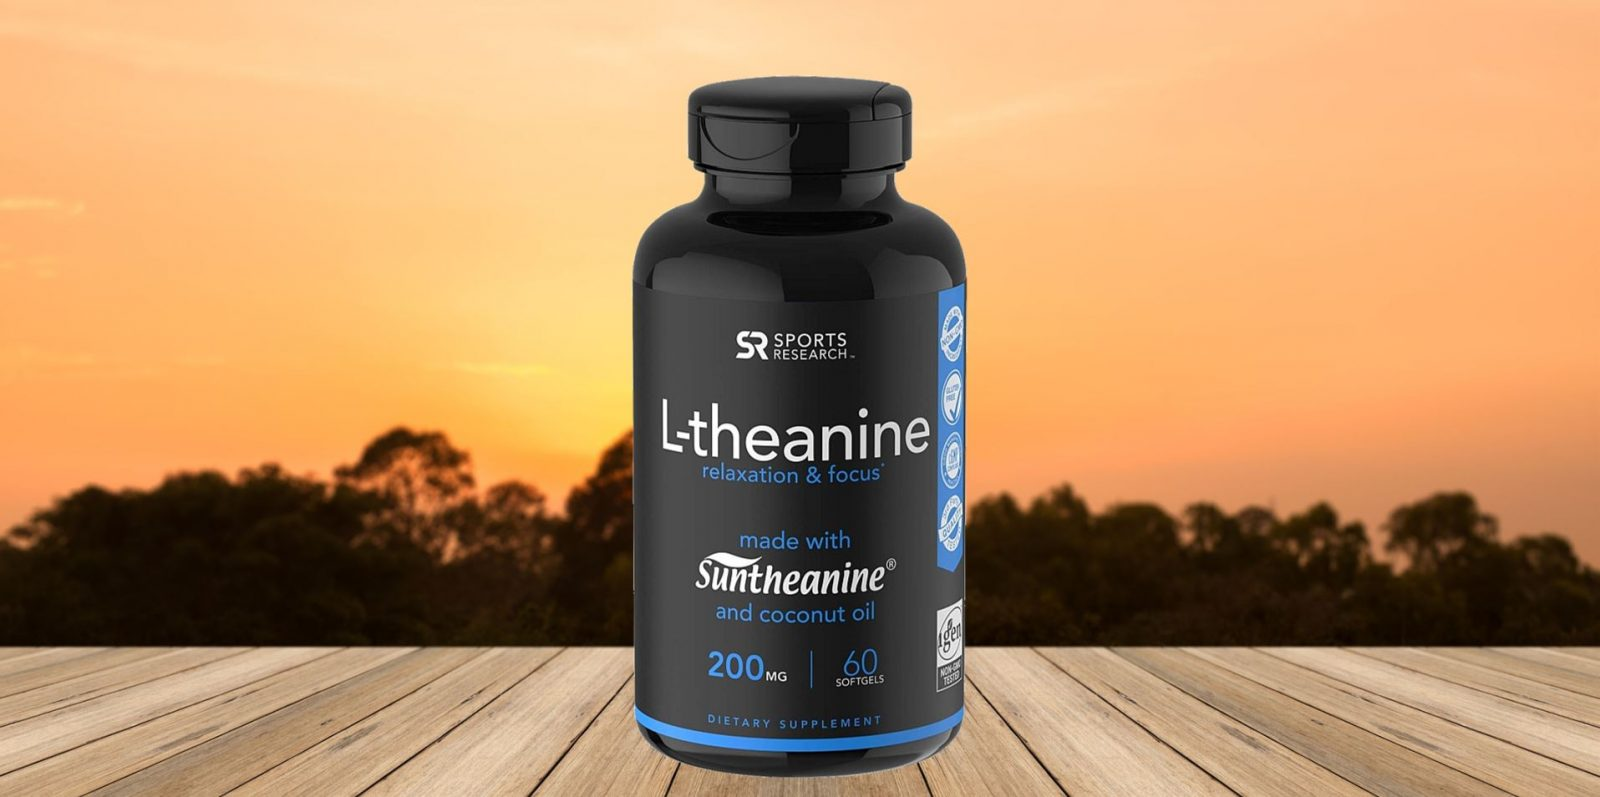 Sports Research L-theanine